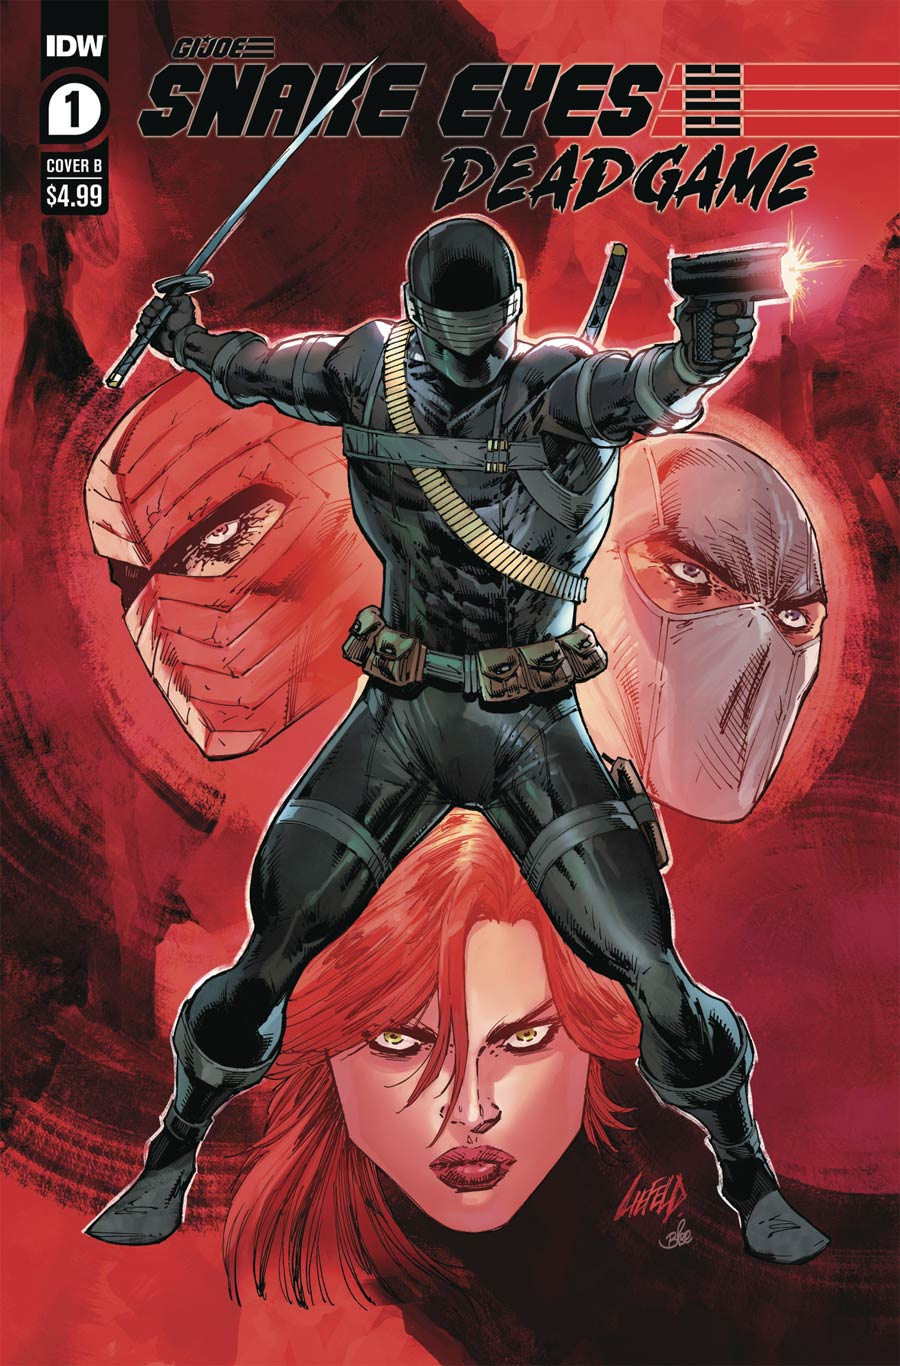 Snake Eyes Deadgame #1 Cover B Variant Rob Liefeld Cover